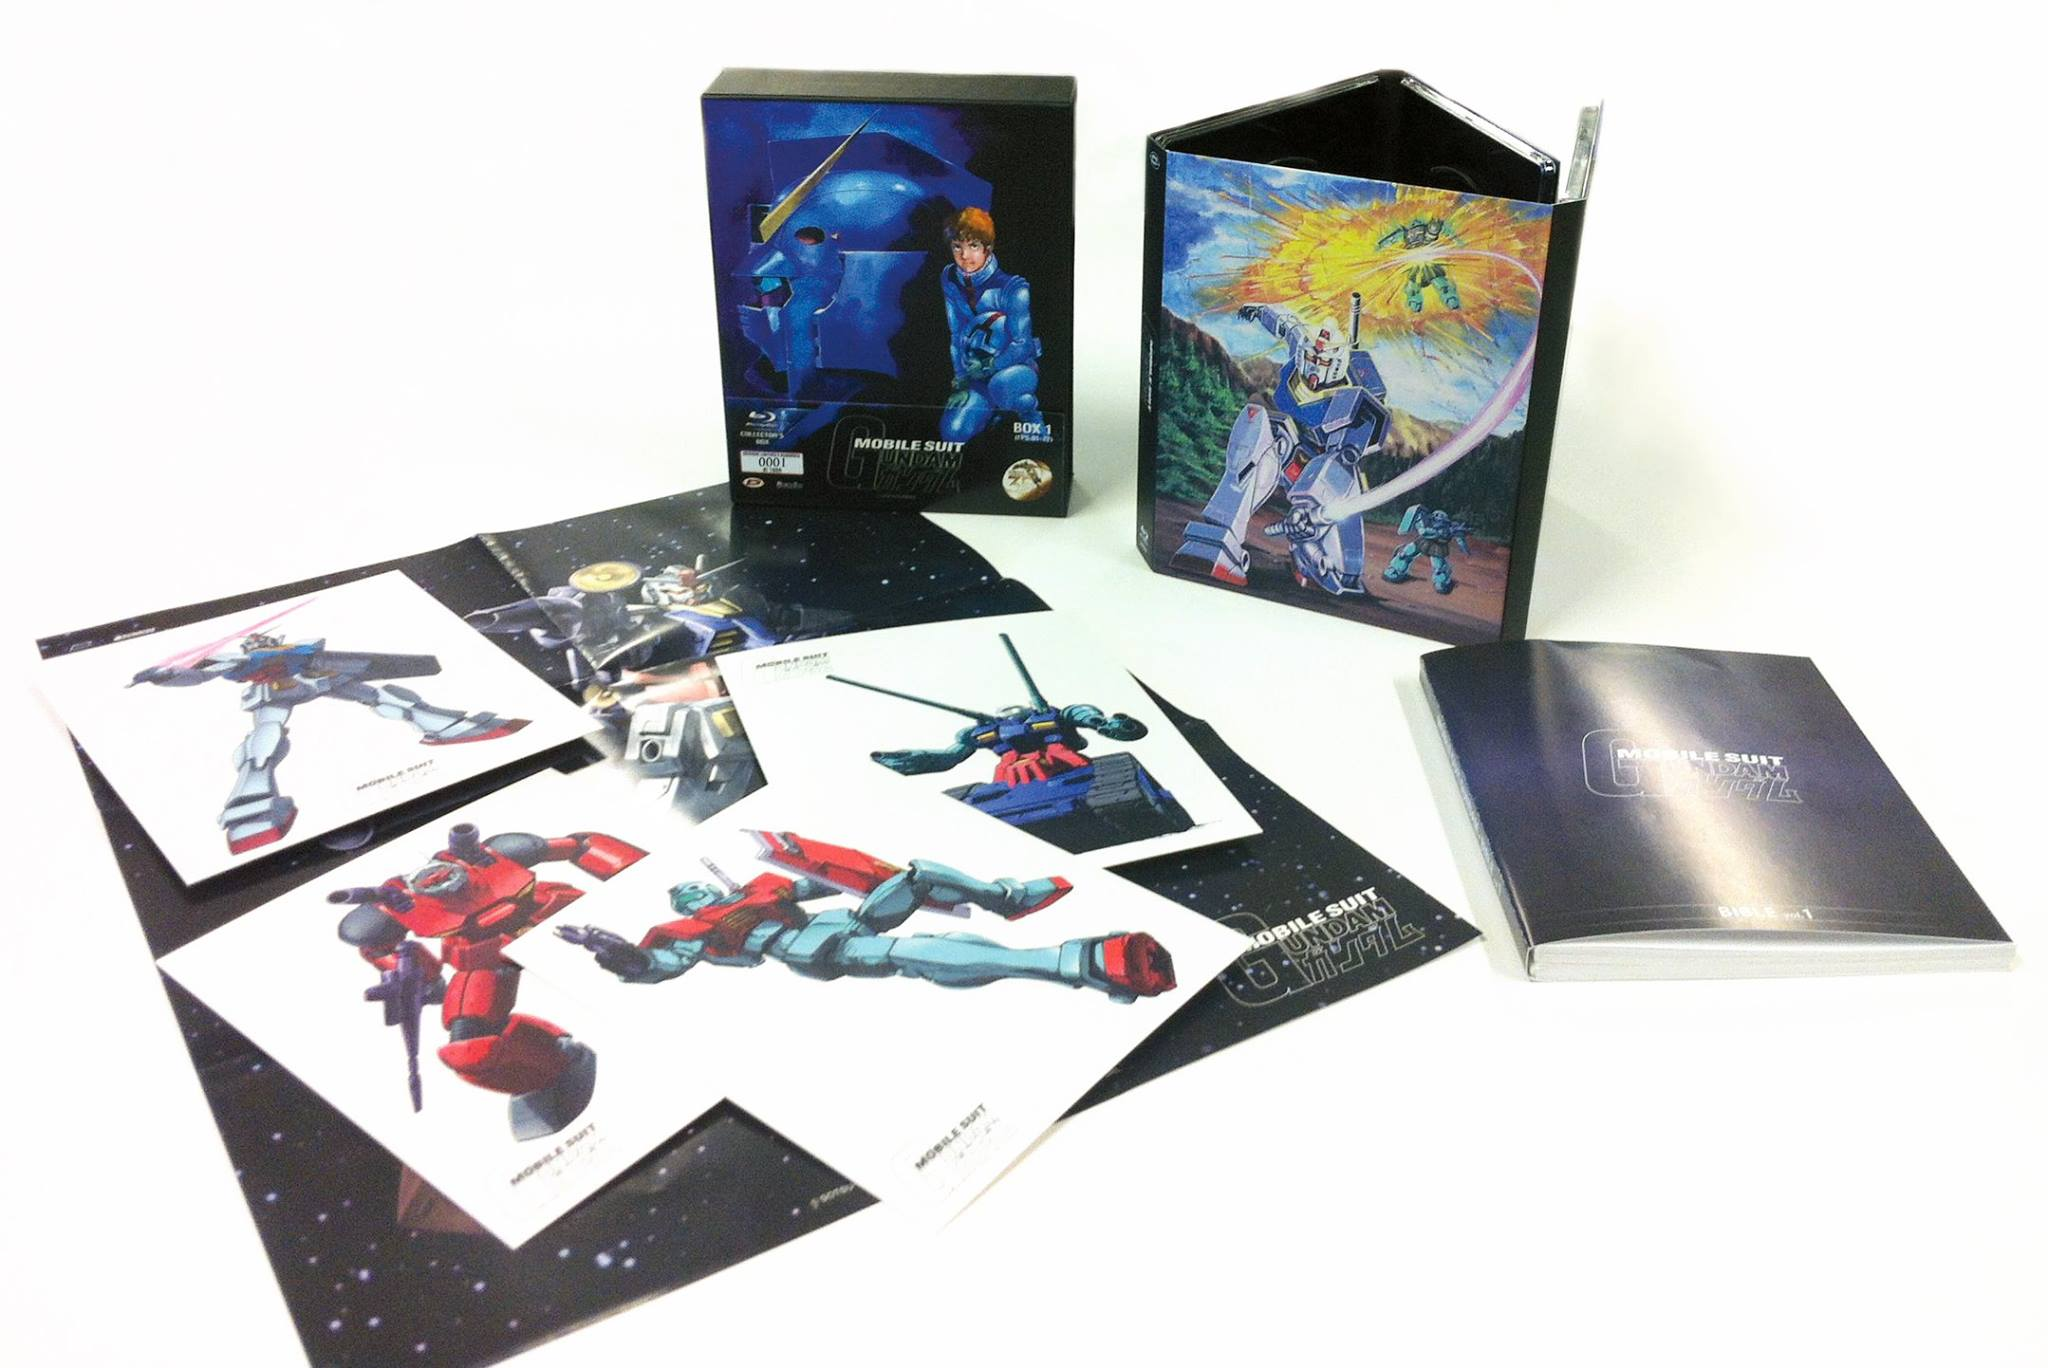 mobile suit gundam prima serie box 1 blu-ray